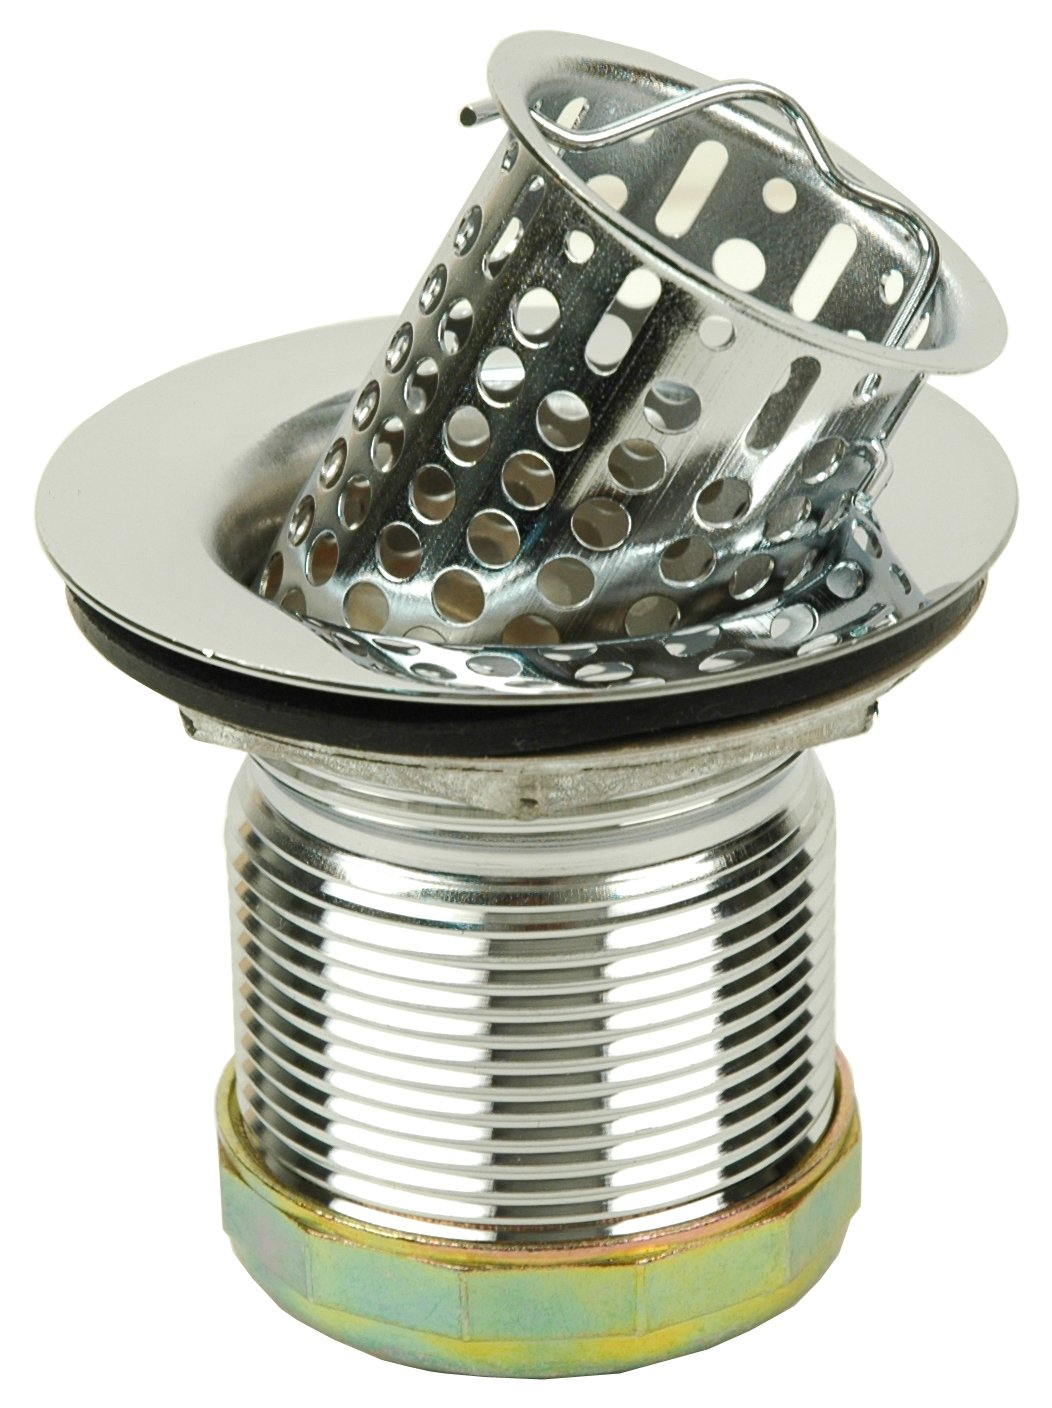 Deep Cup Bar Sink Strainer - By Plumb USA